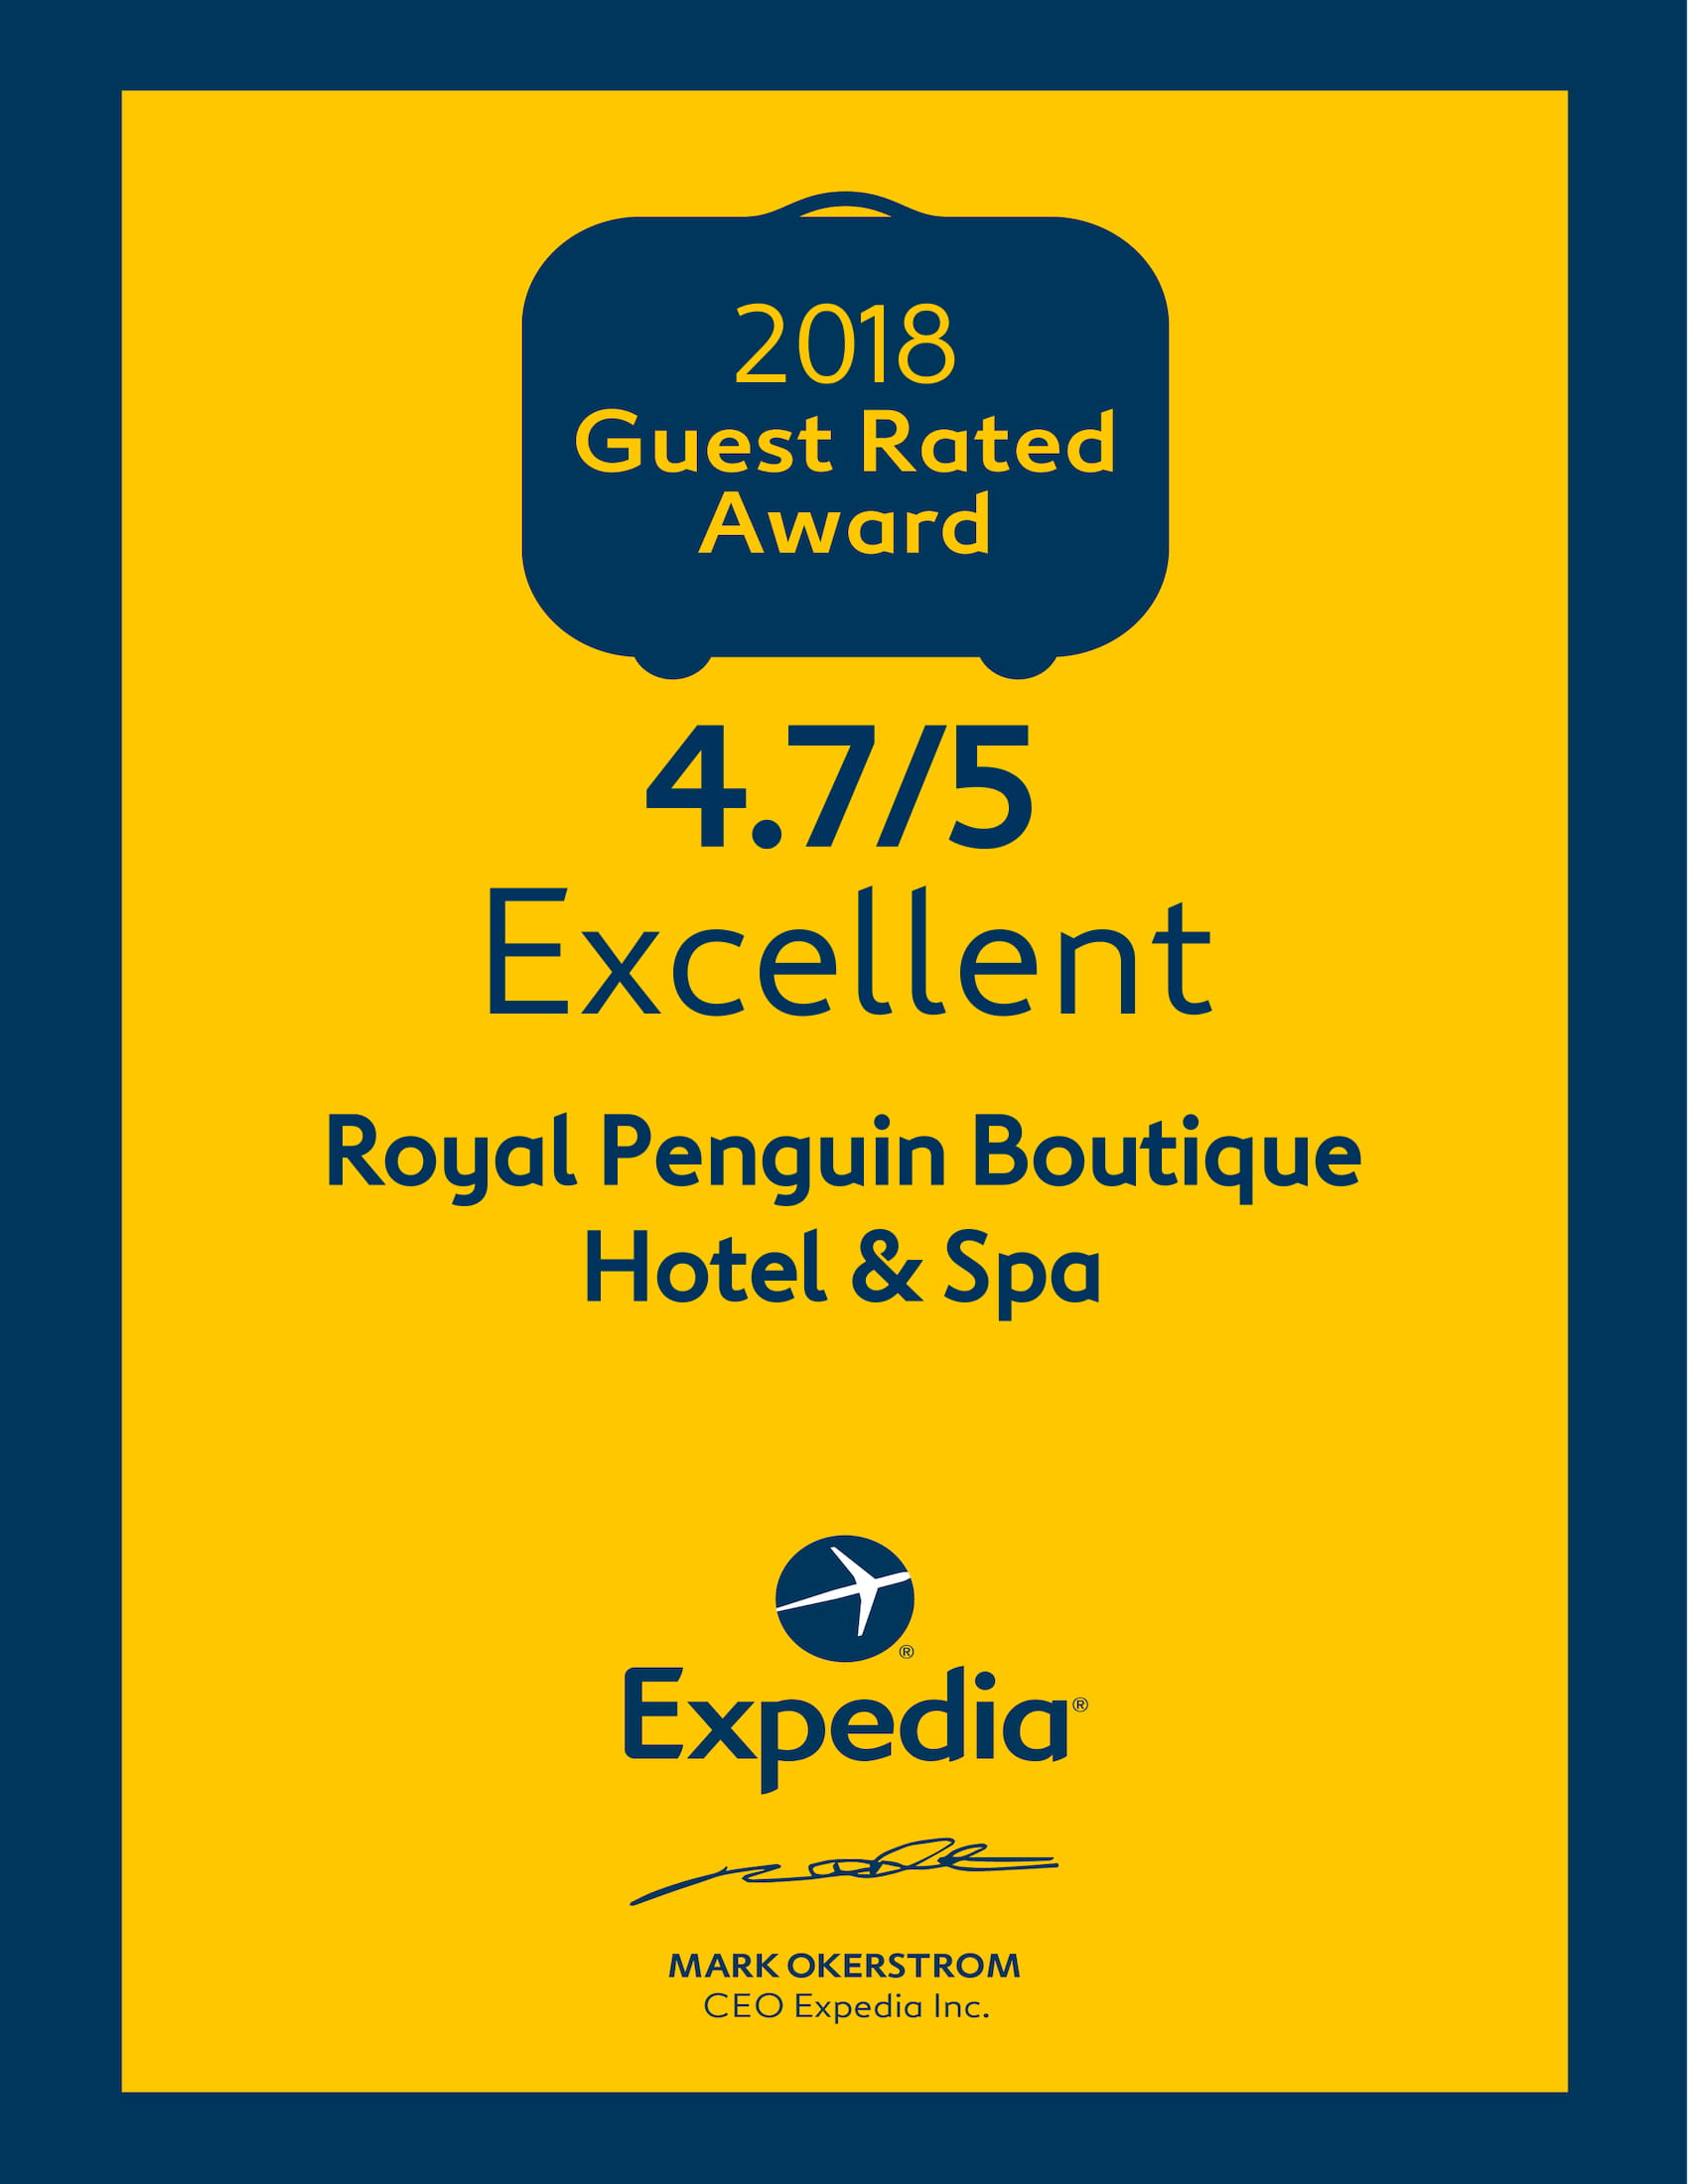 Expedia.com Guest Rated Award 2018